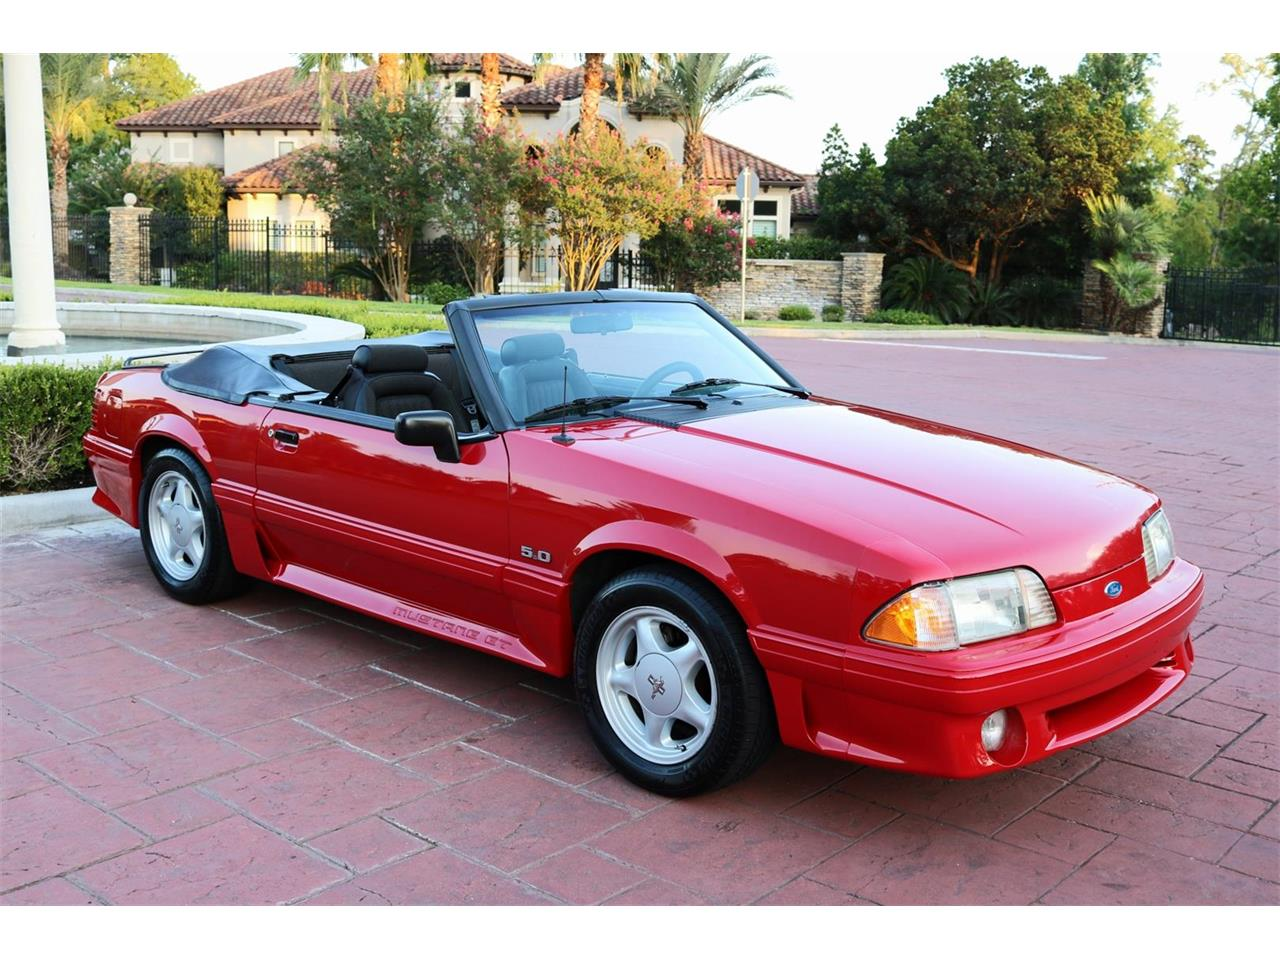 91 Mustang Gt >> For Sale 1991 Ford Mustang Gt In Conroe Texas